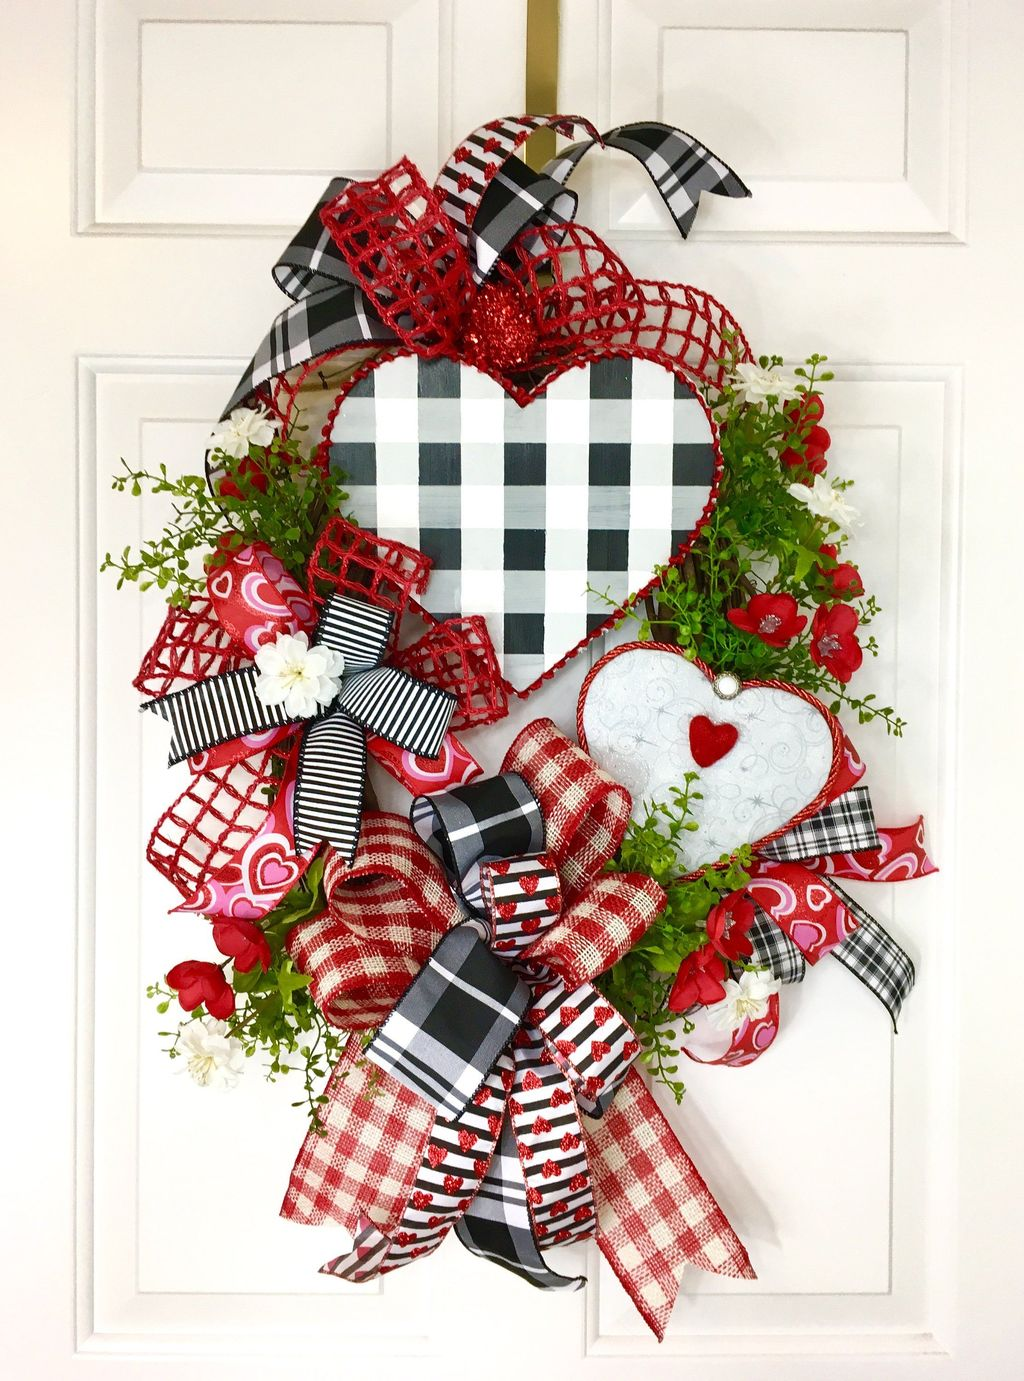 Fabulous Valentine Wreath Design Ideas FOr Your Front Door Decor 29